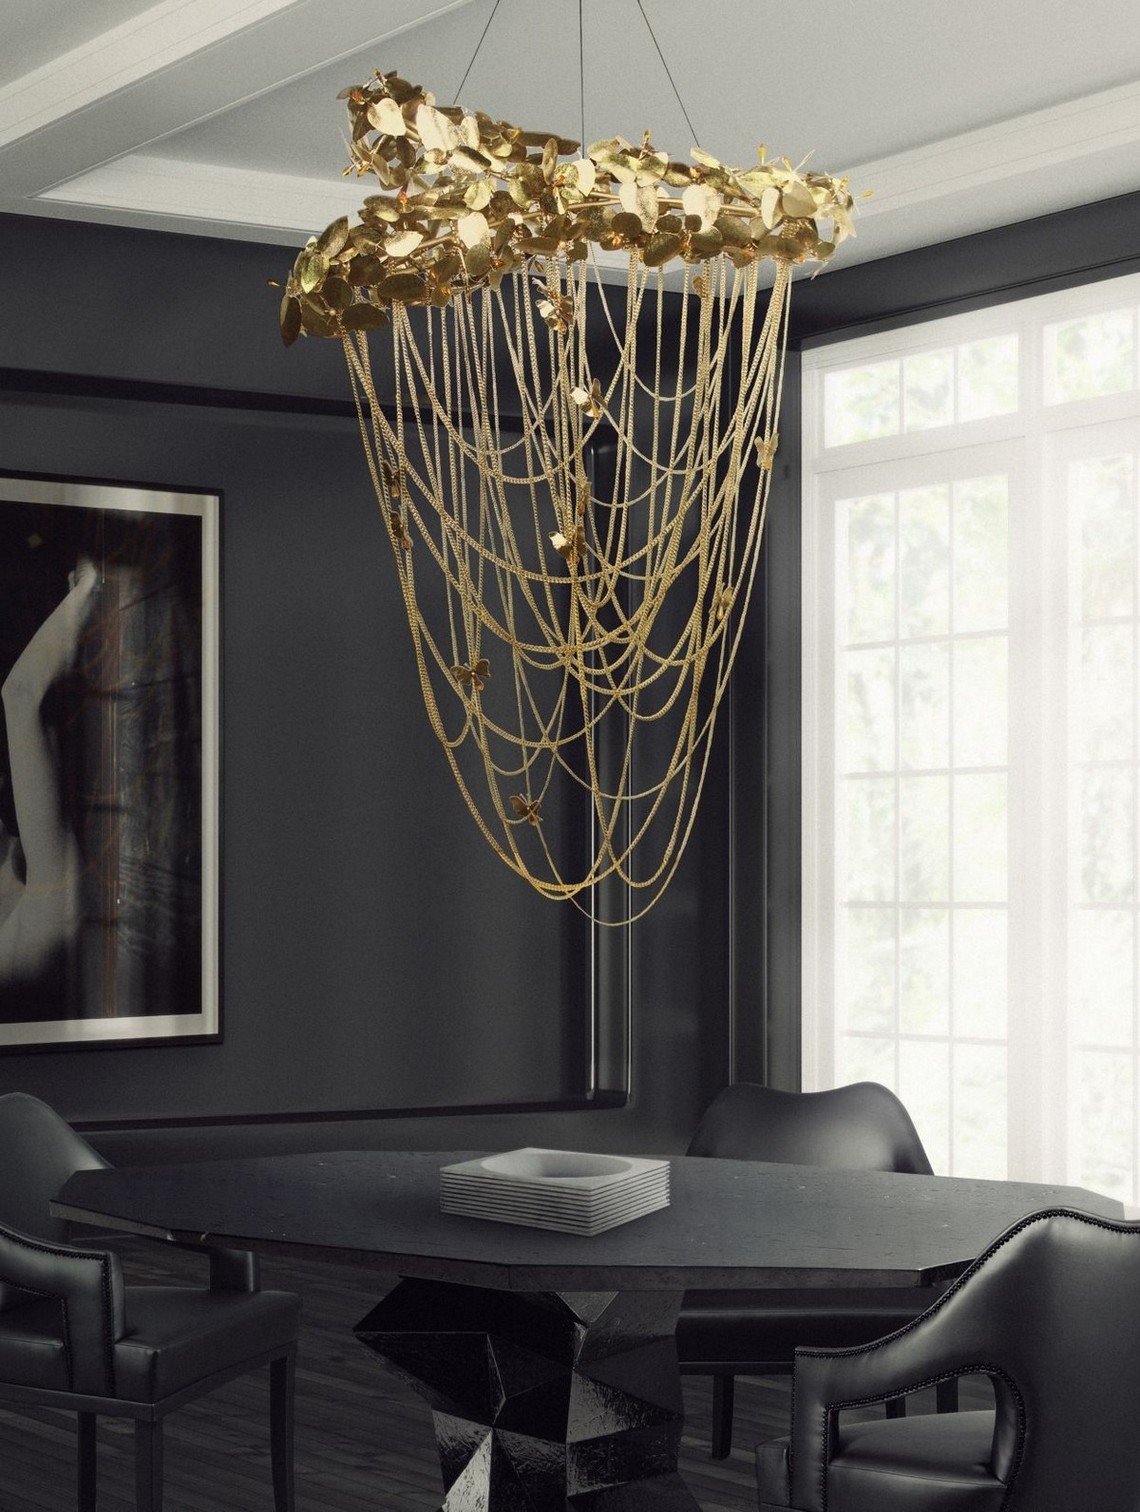 7 Luxury Chandeliers You Will Love luxury chandeliers 7 Luxury Chandeliers You Will Love mcqueeen